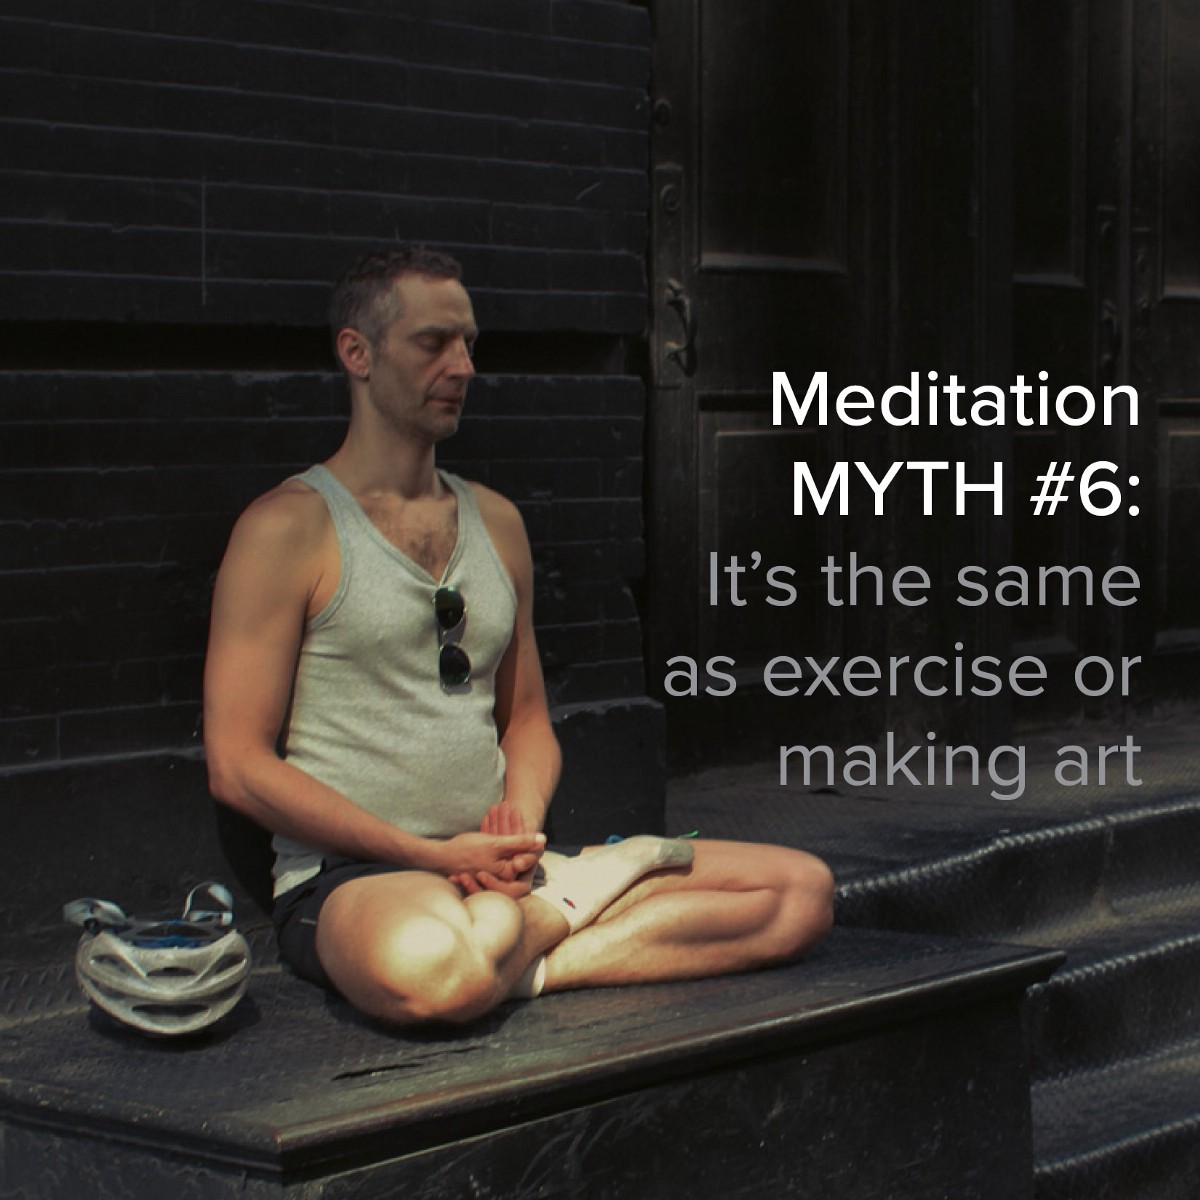 meditation-myth-6.jpeg